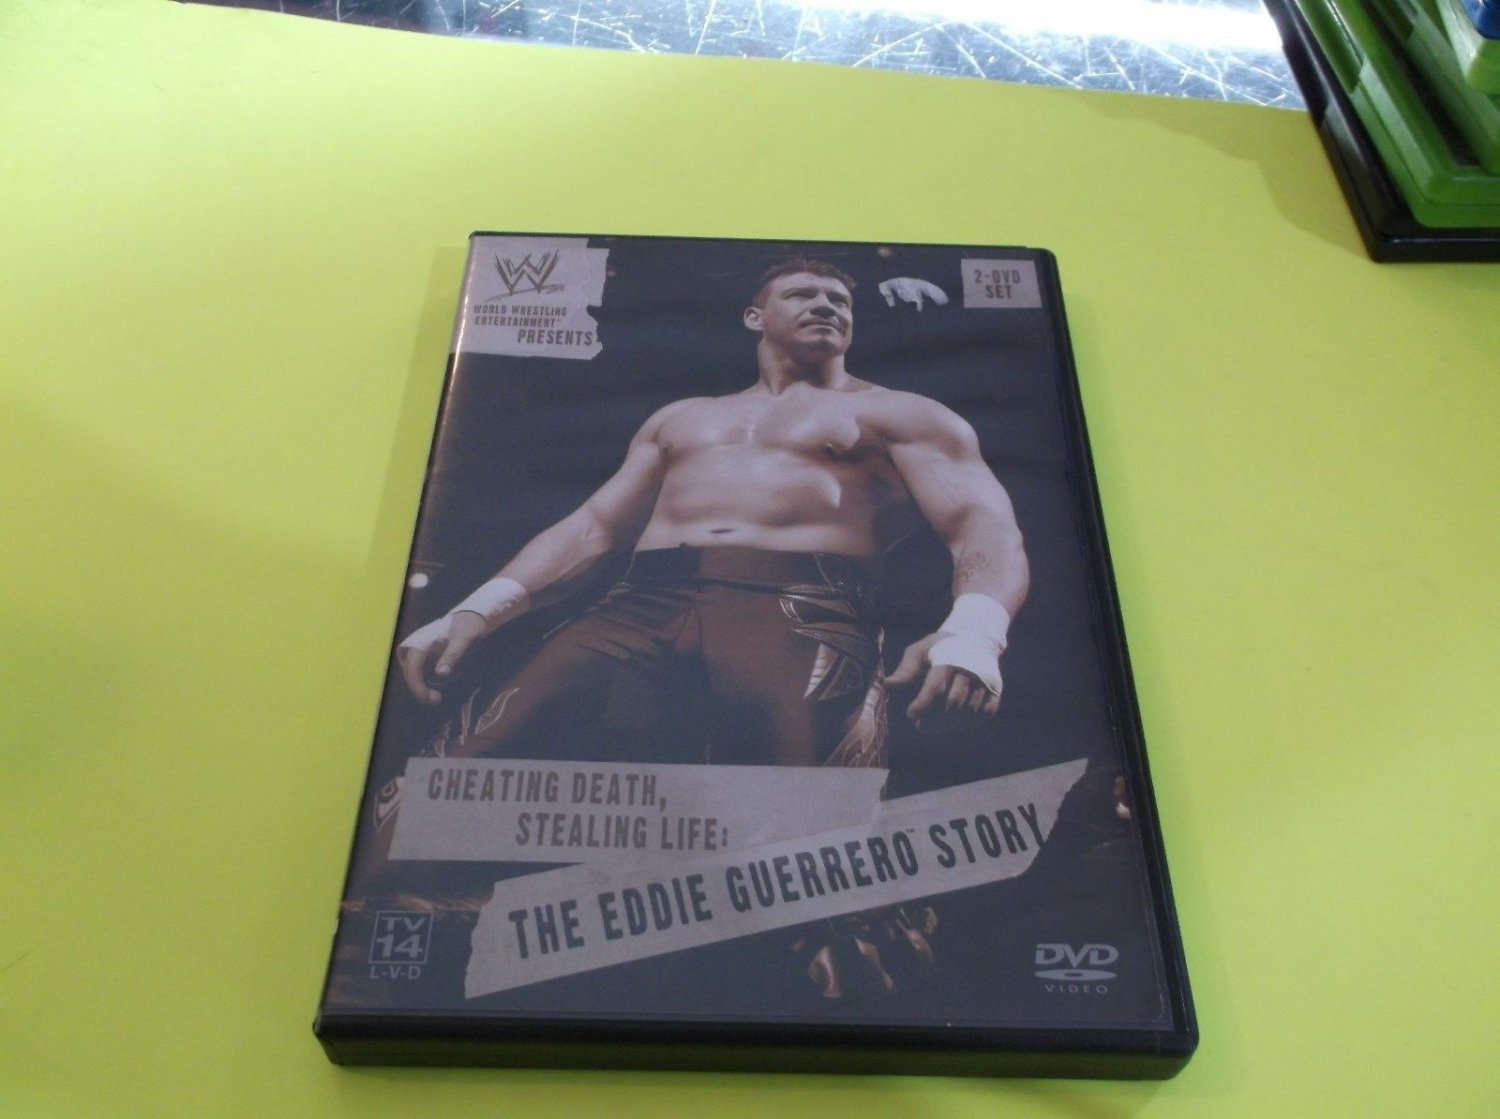 Cheating Death, Stealing Life: The Eddie Guerrero Story (DVD, 2004, 2-Disc Set)